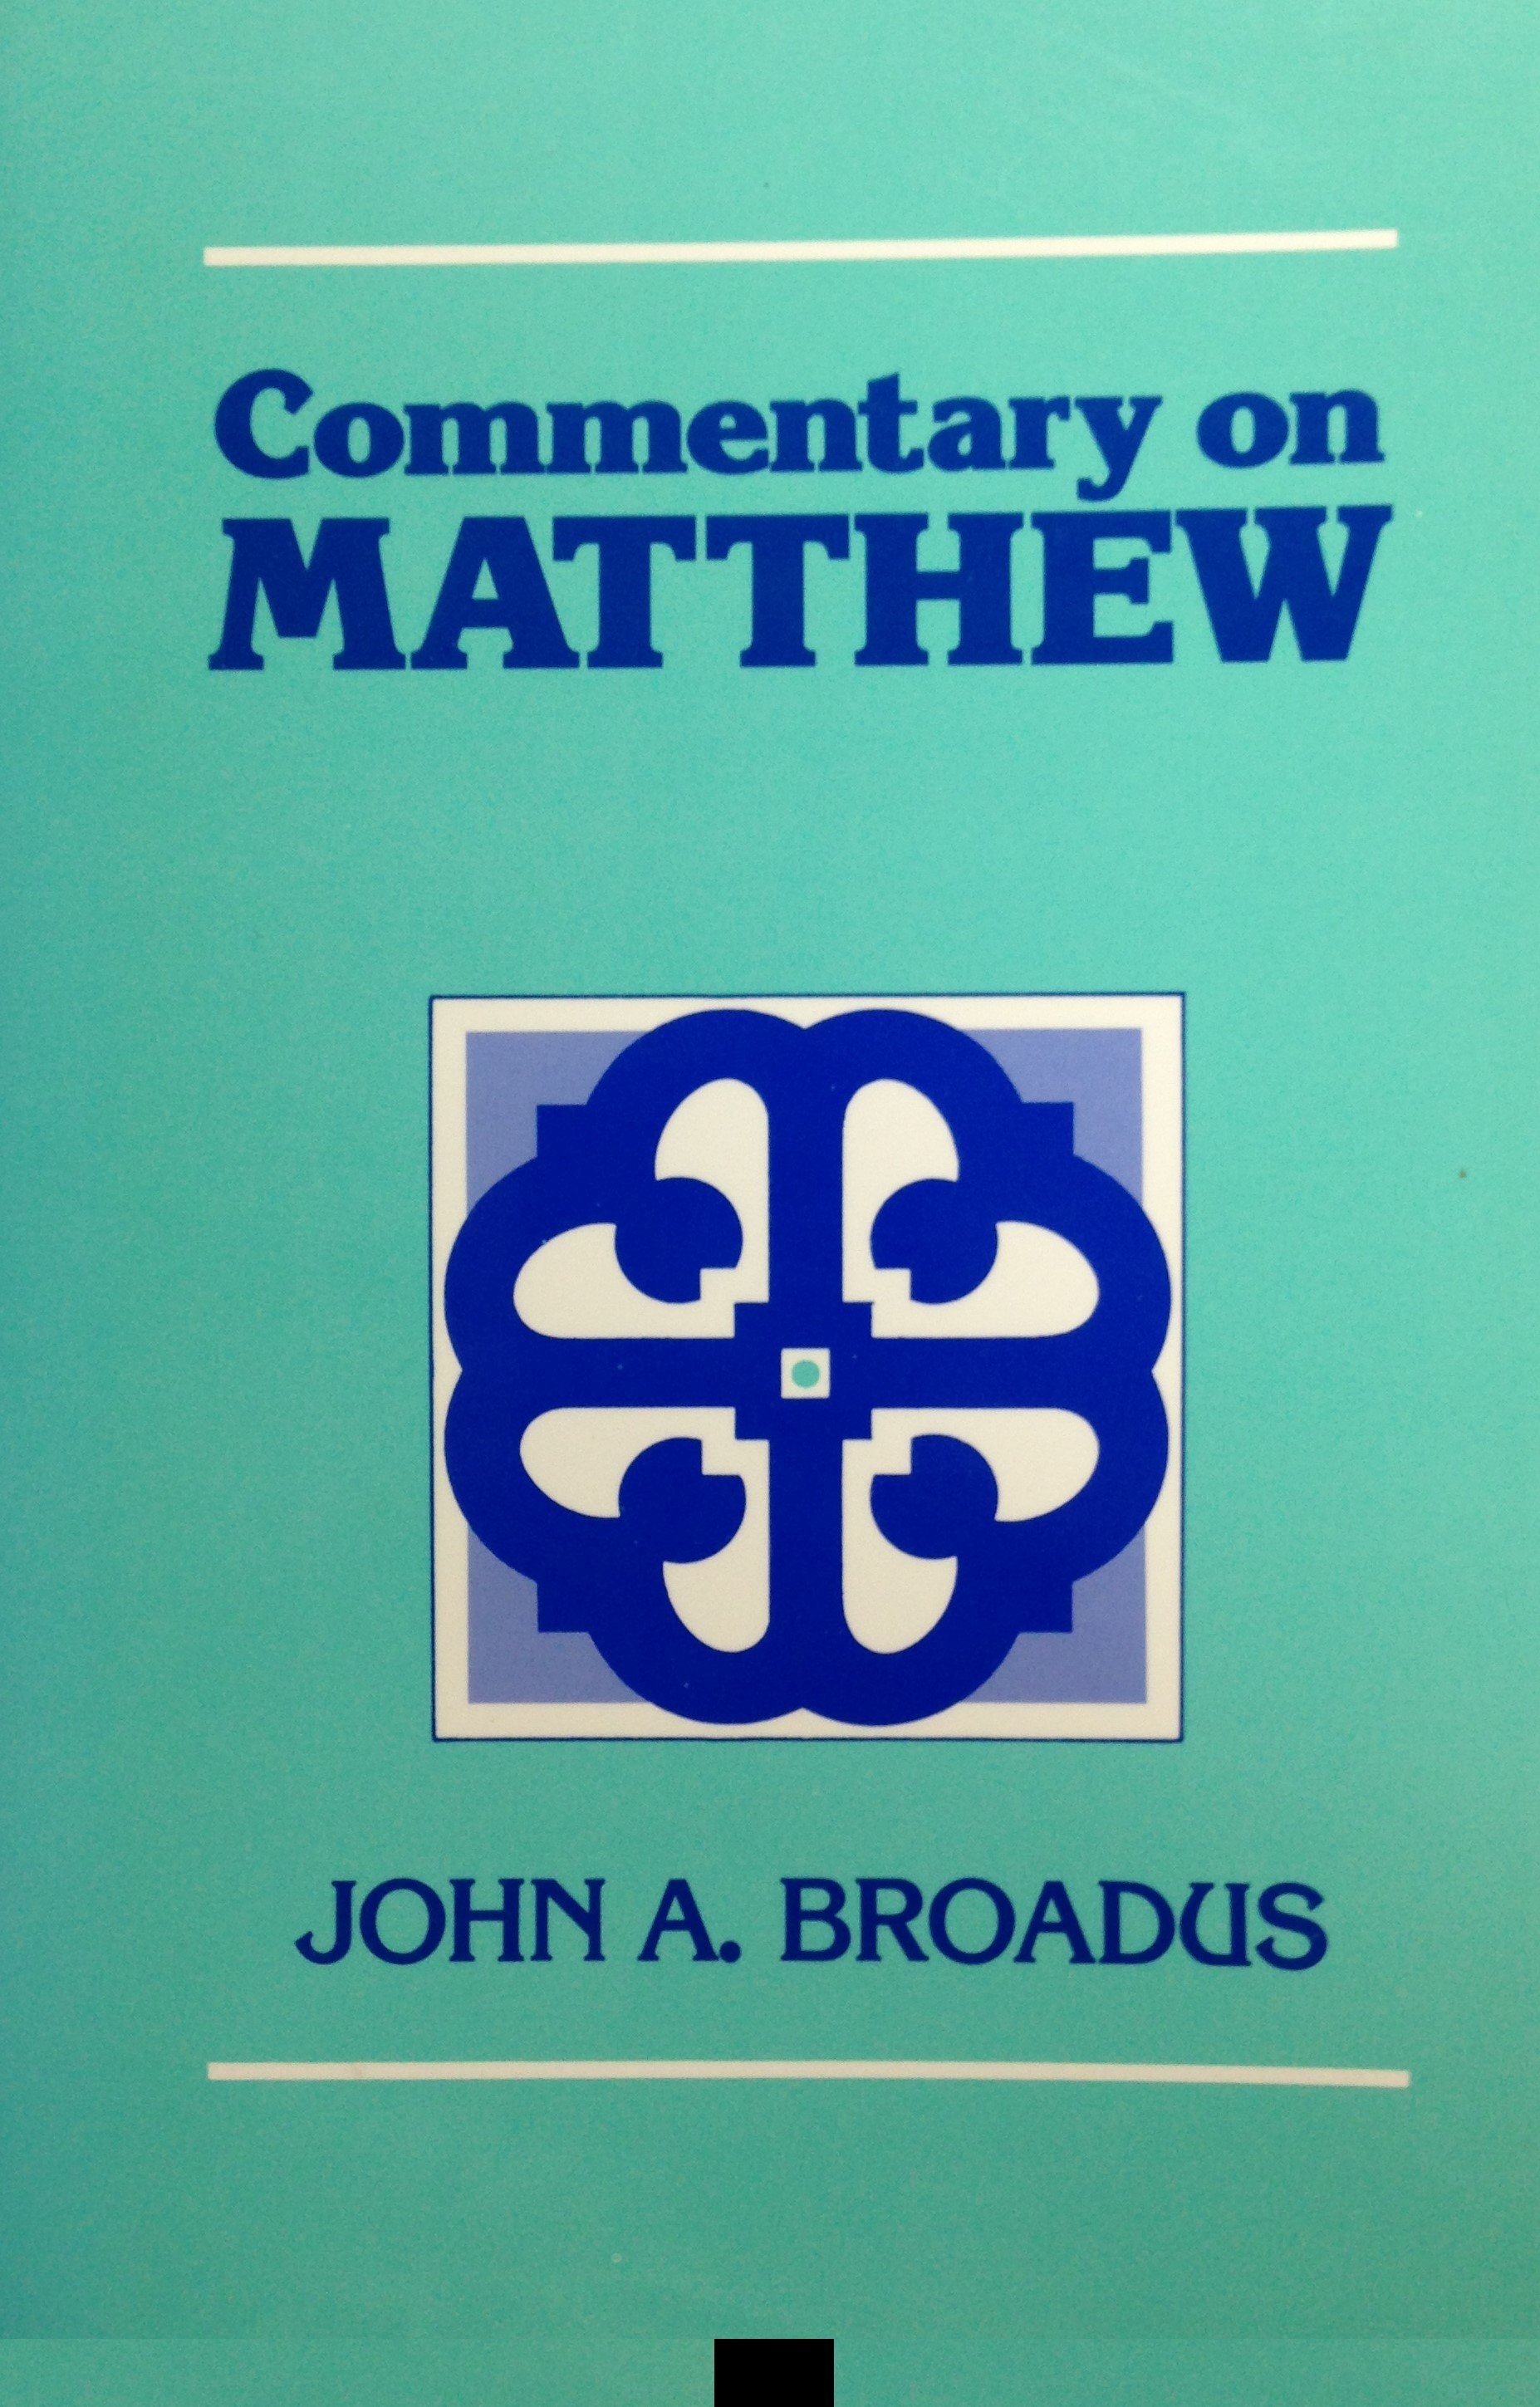 Commentary on Matthew by John A. Broadus 00089